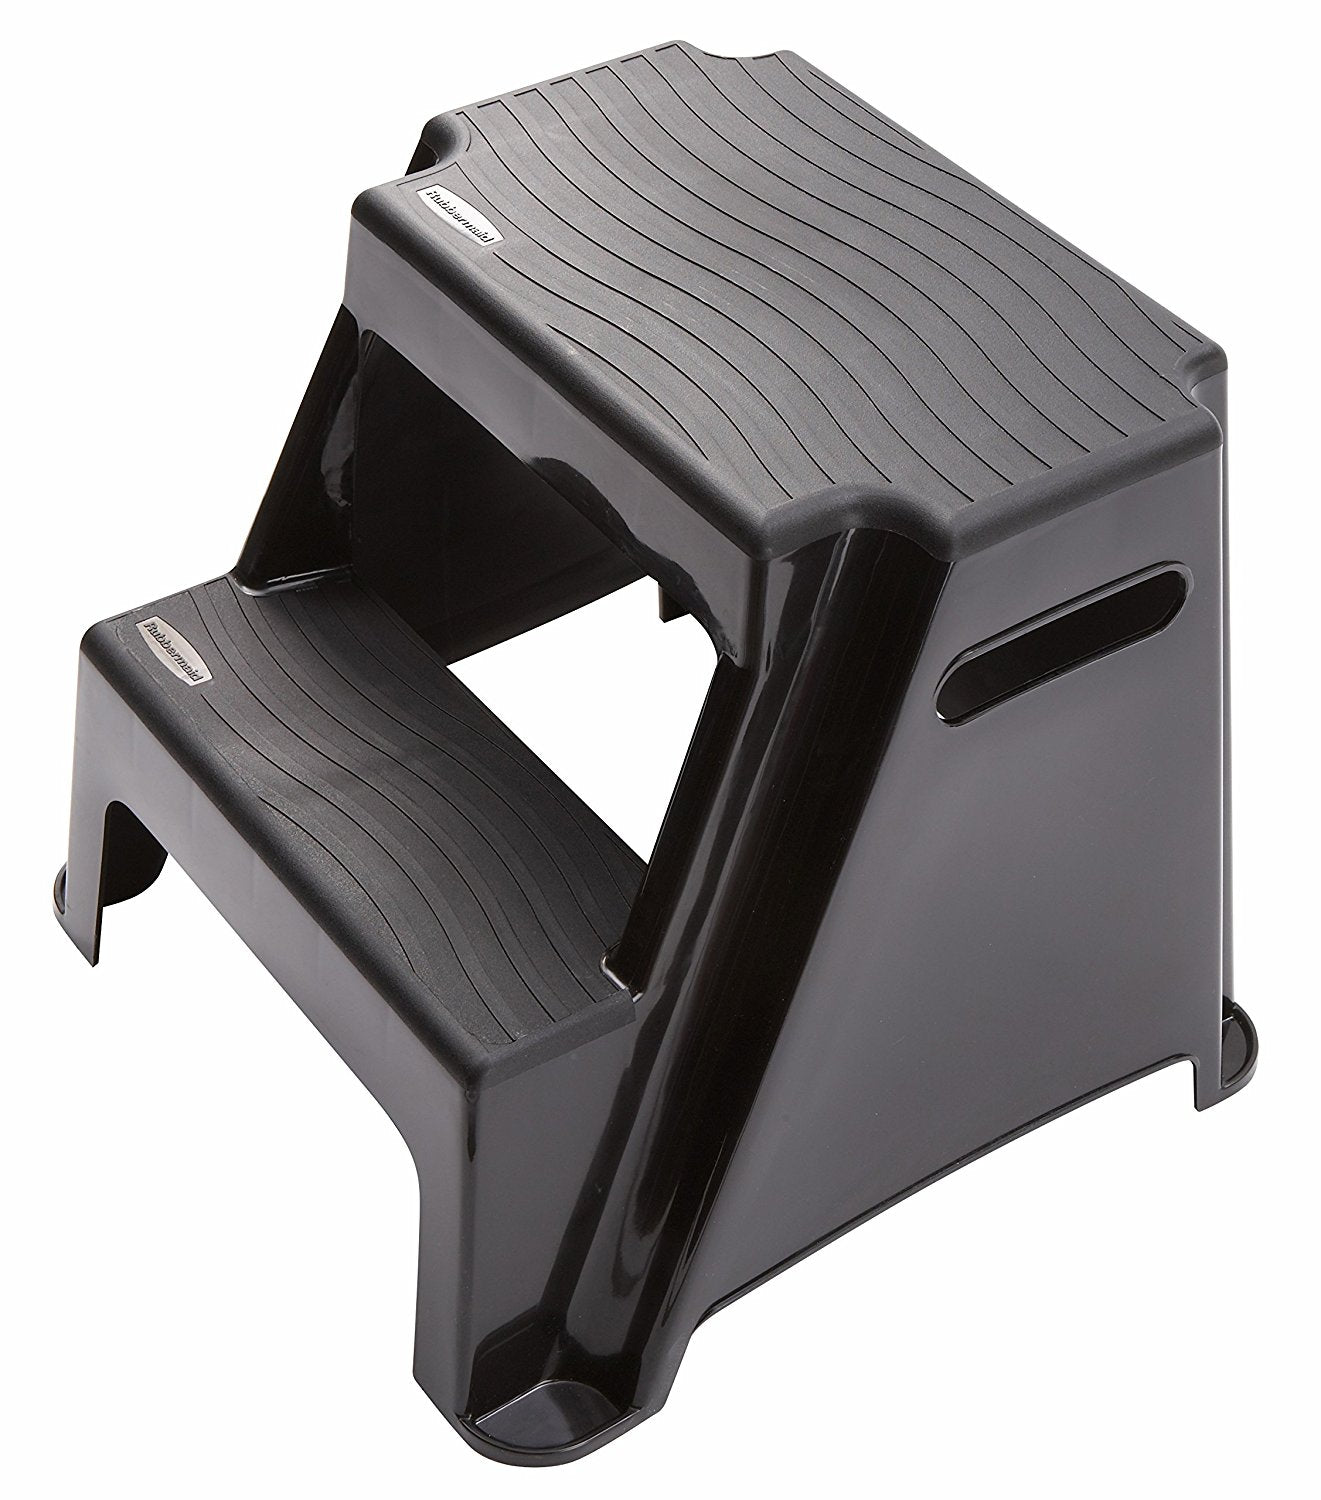 Groovy Rubbermaid Rm P2 2 Step Molded Plastic Stool Cjindustries Chair Design For Home Cjindustriesco